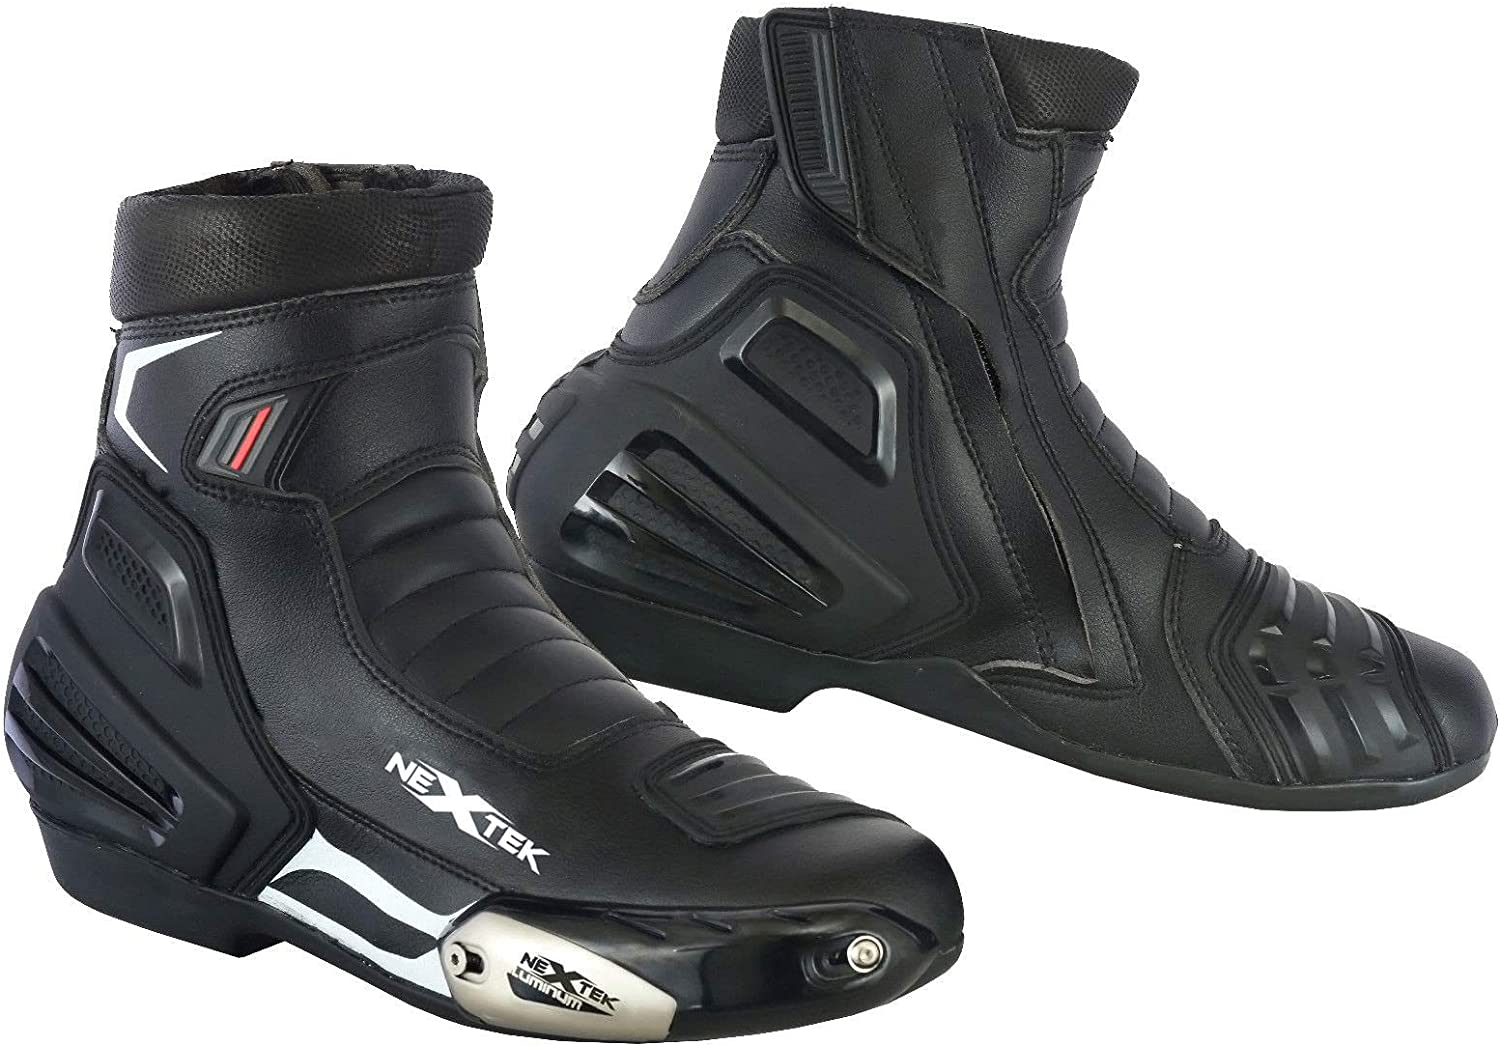 EU 38 PROFIRST Pure Leather Motorbike Boots Motorcycle Armoured Long High Ankle Shoes Crash Protection Protective Comfortable Racing White /& Black UK 4